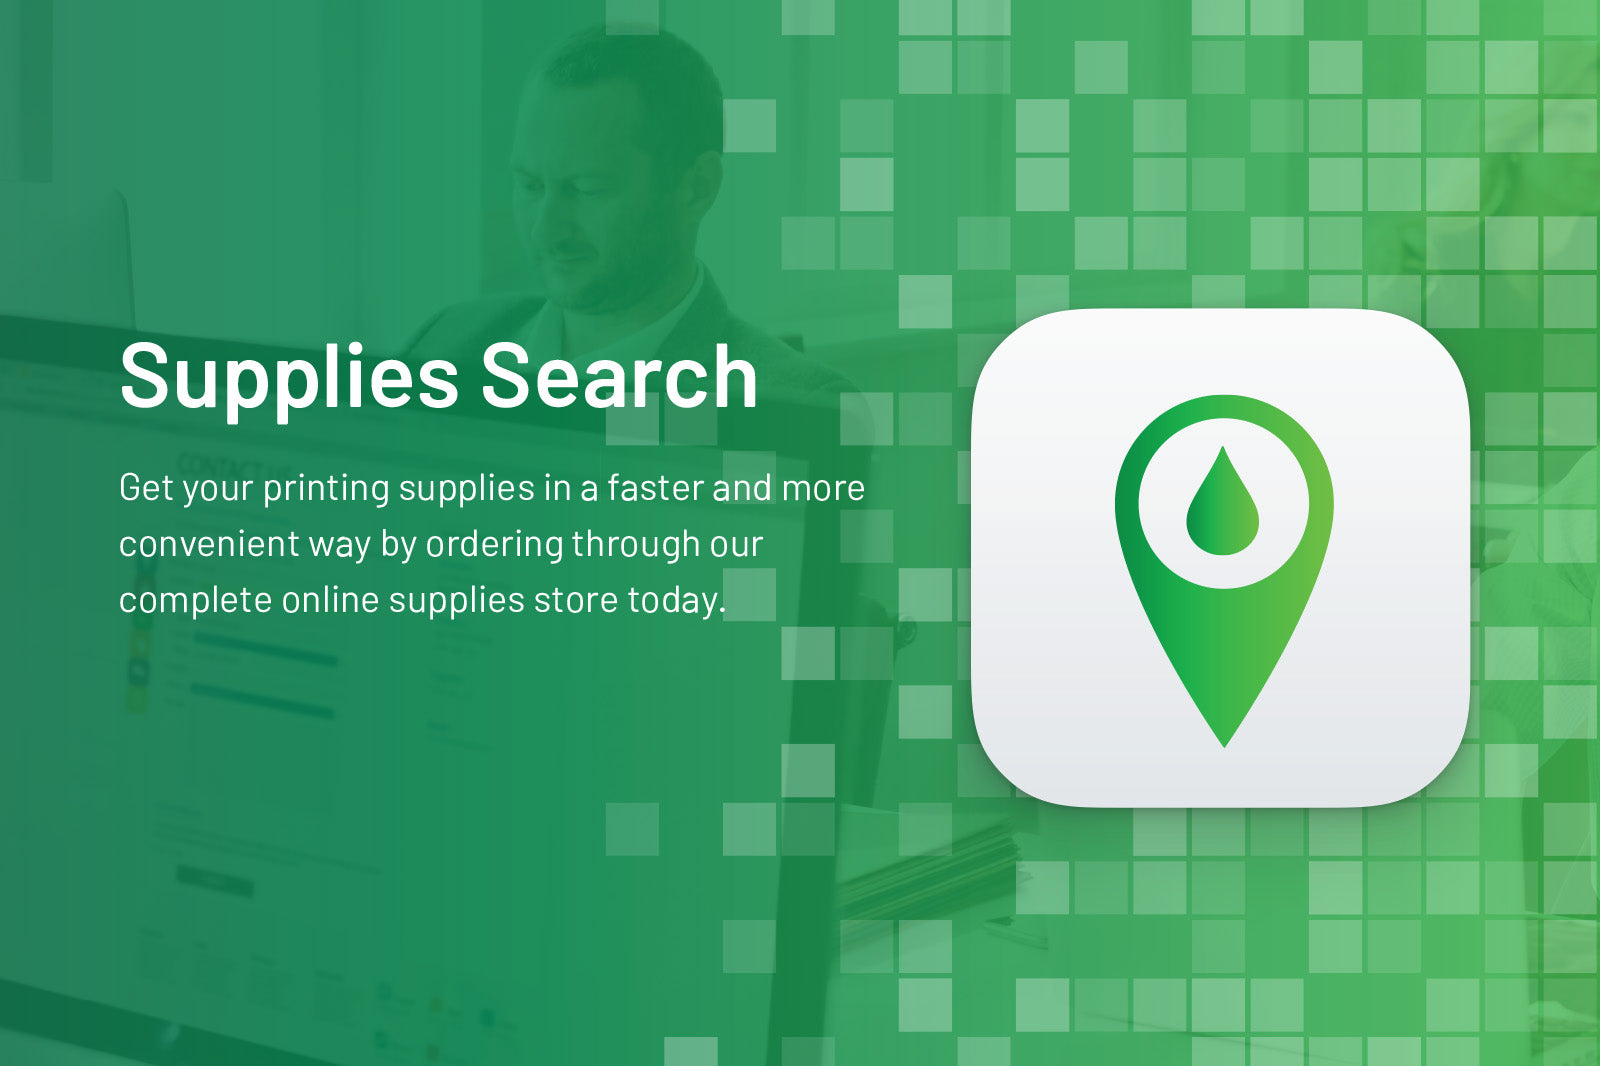 Supplies Search. Get your printing supplies in a faster and more convenient way by ordering through our complete online supplies store today.